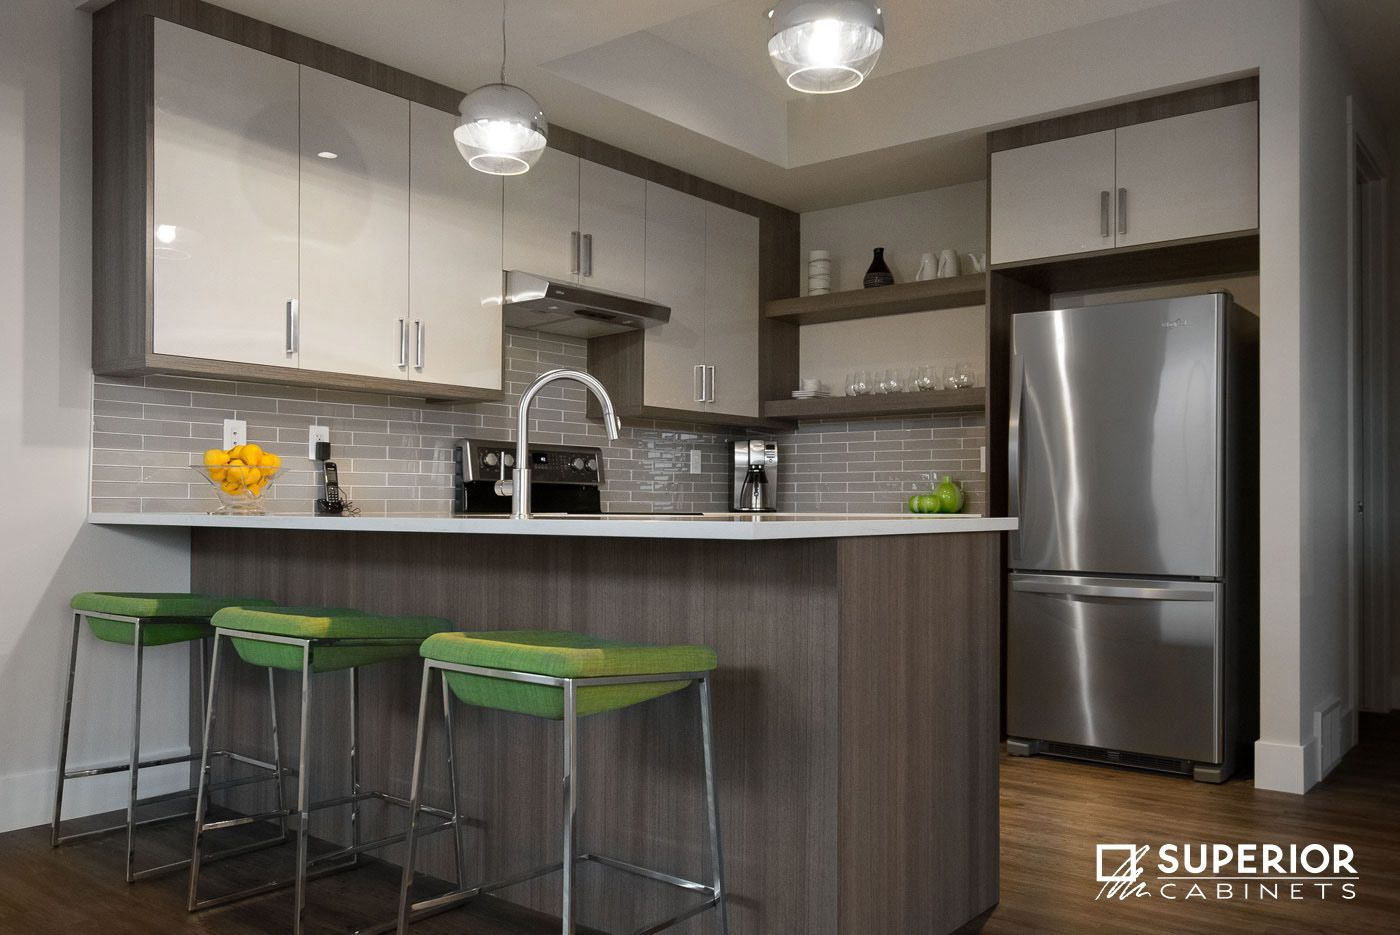 Design By Viga Developments And Andy Afonso Cabinet Design David